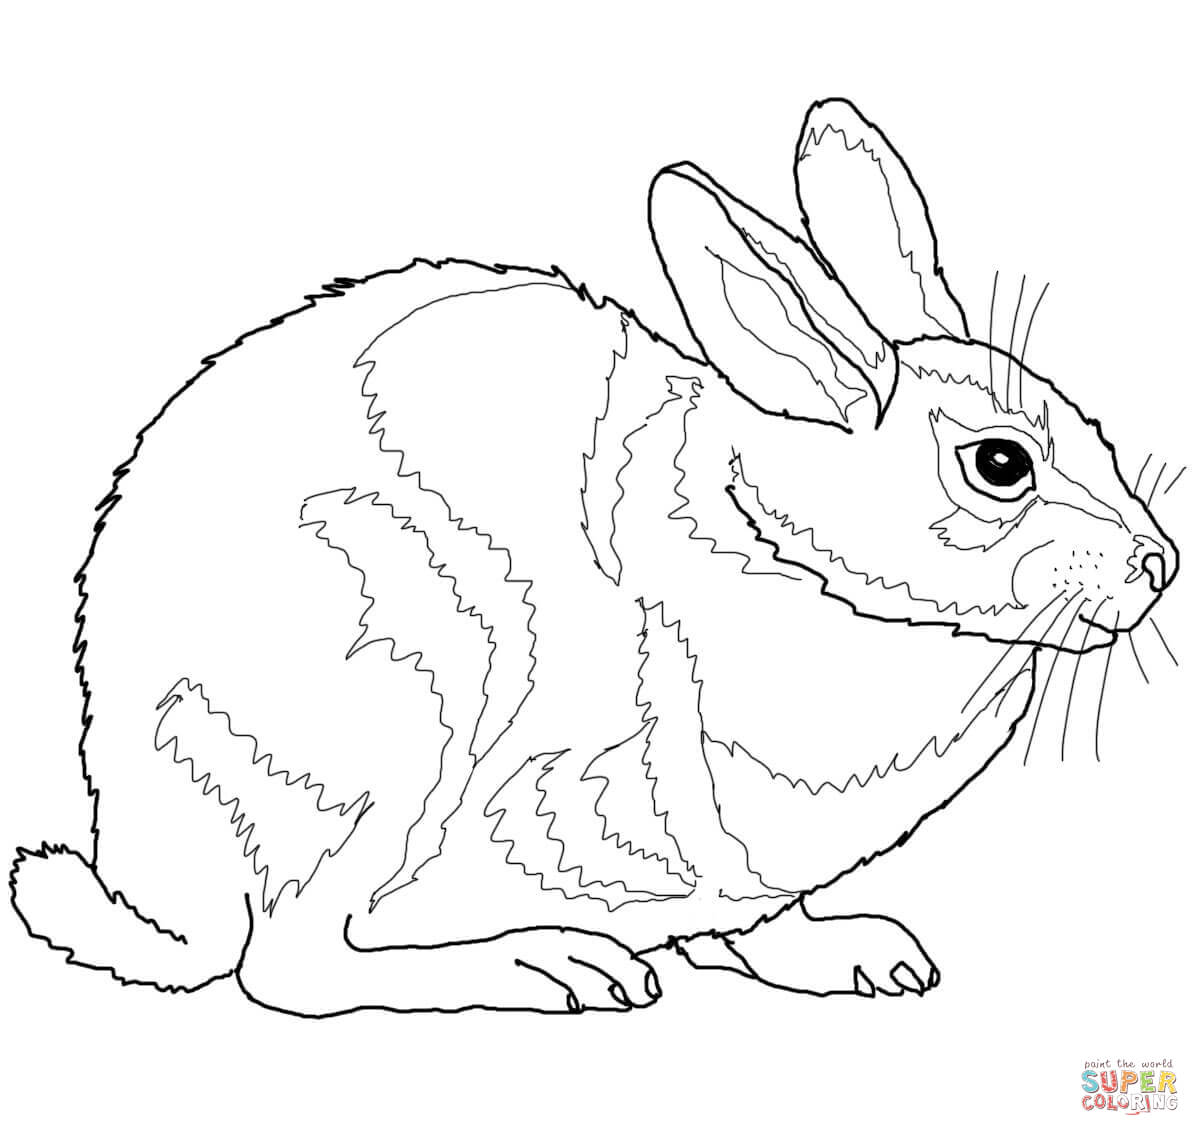 Drawn rabbit cottontail rabbit Printable Cottontail Free Eastern page